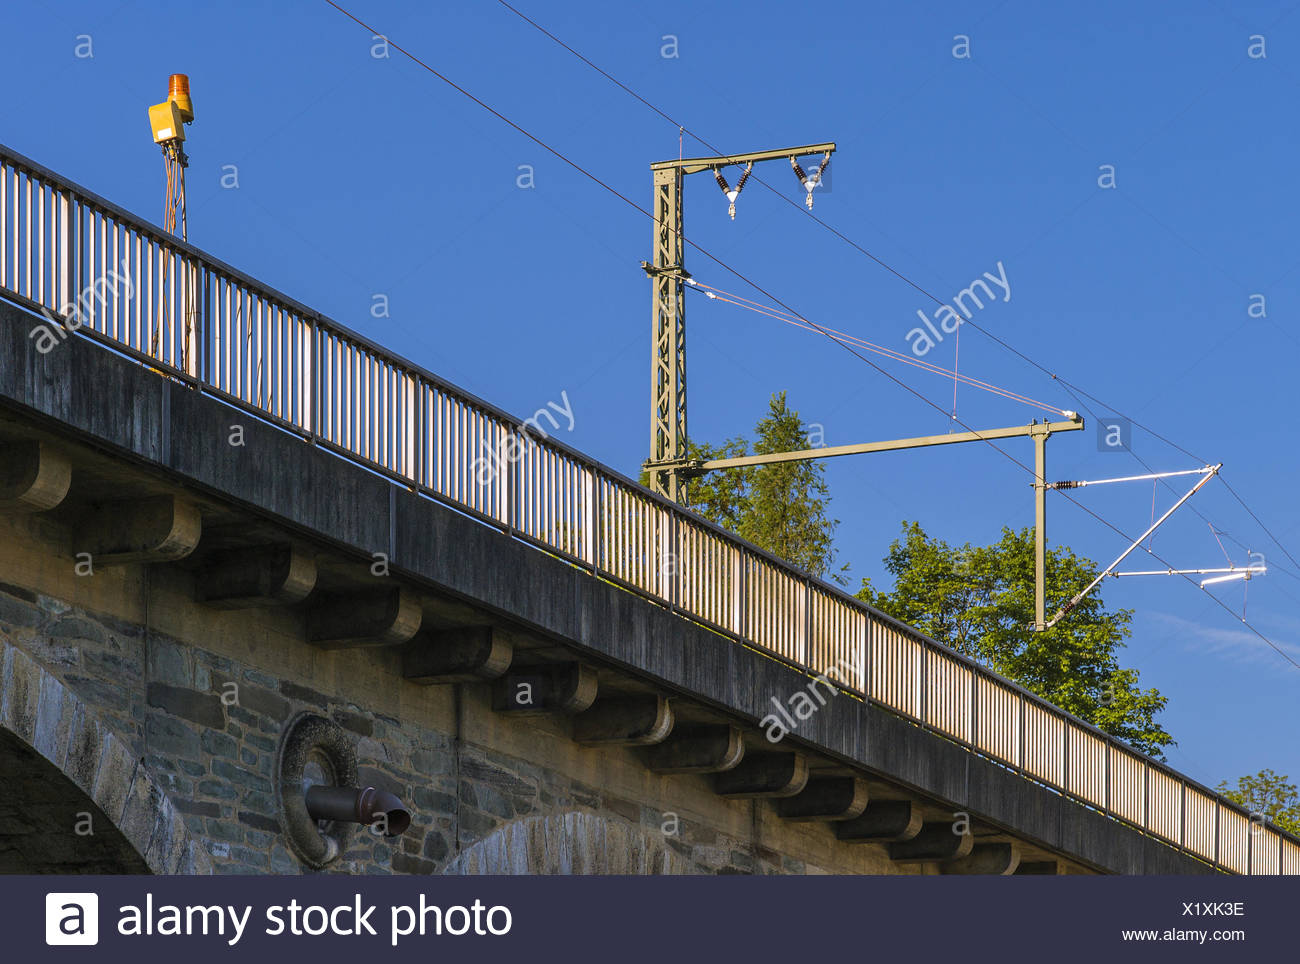 Railway construction - Stock Image